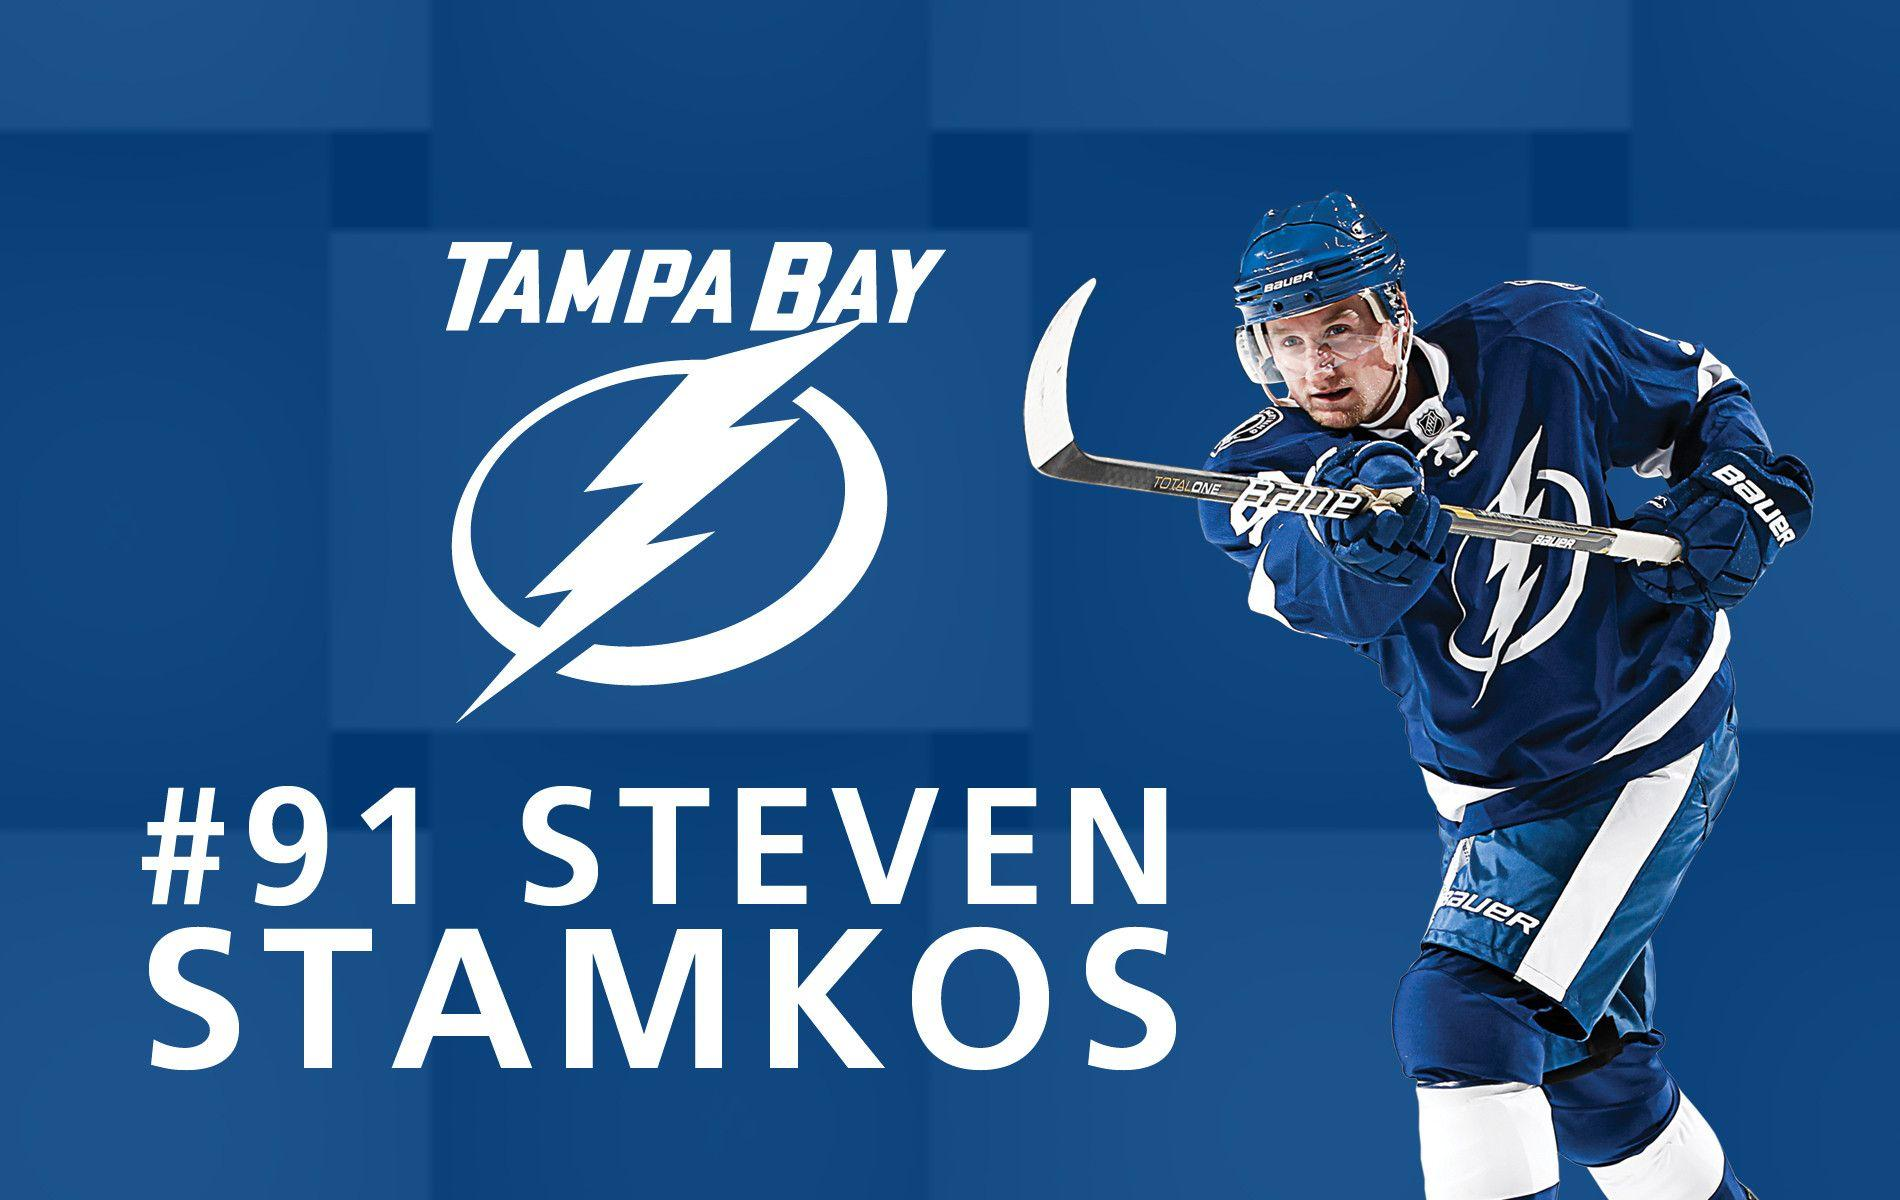 Steven Stamkos Wallpaper - Tampa Bay Lightning Photo (30398496 ...